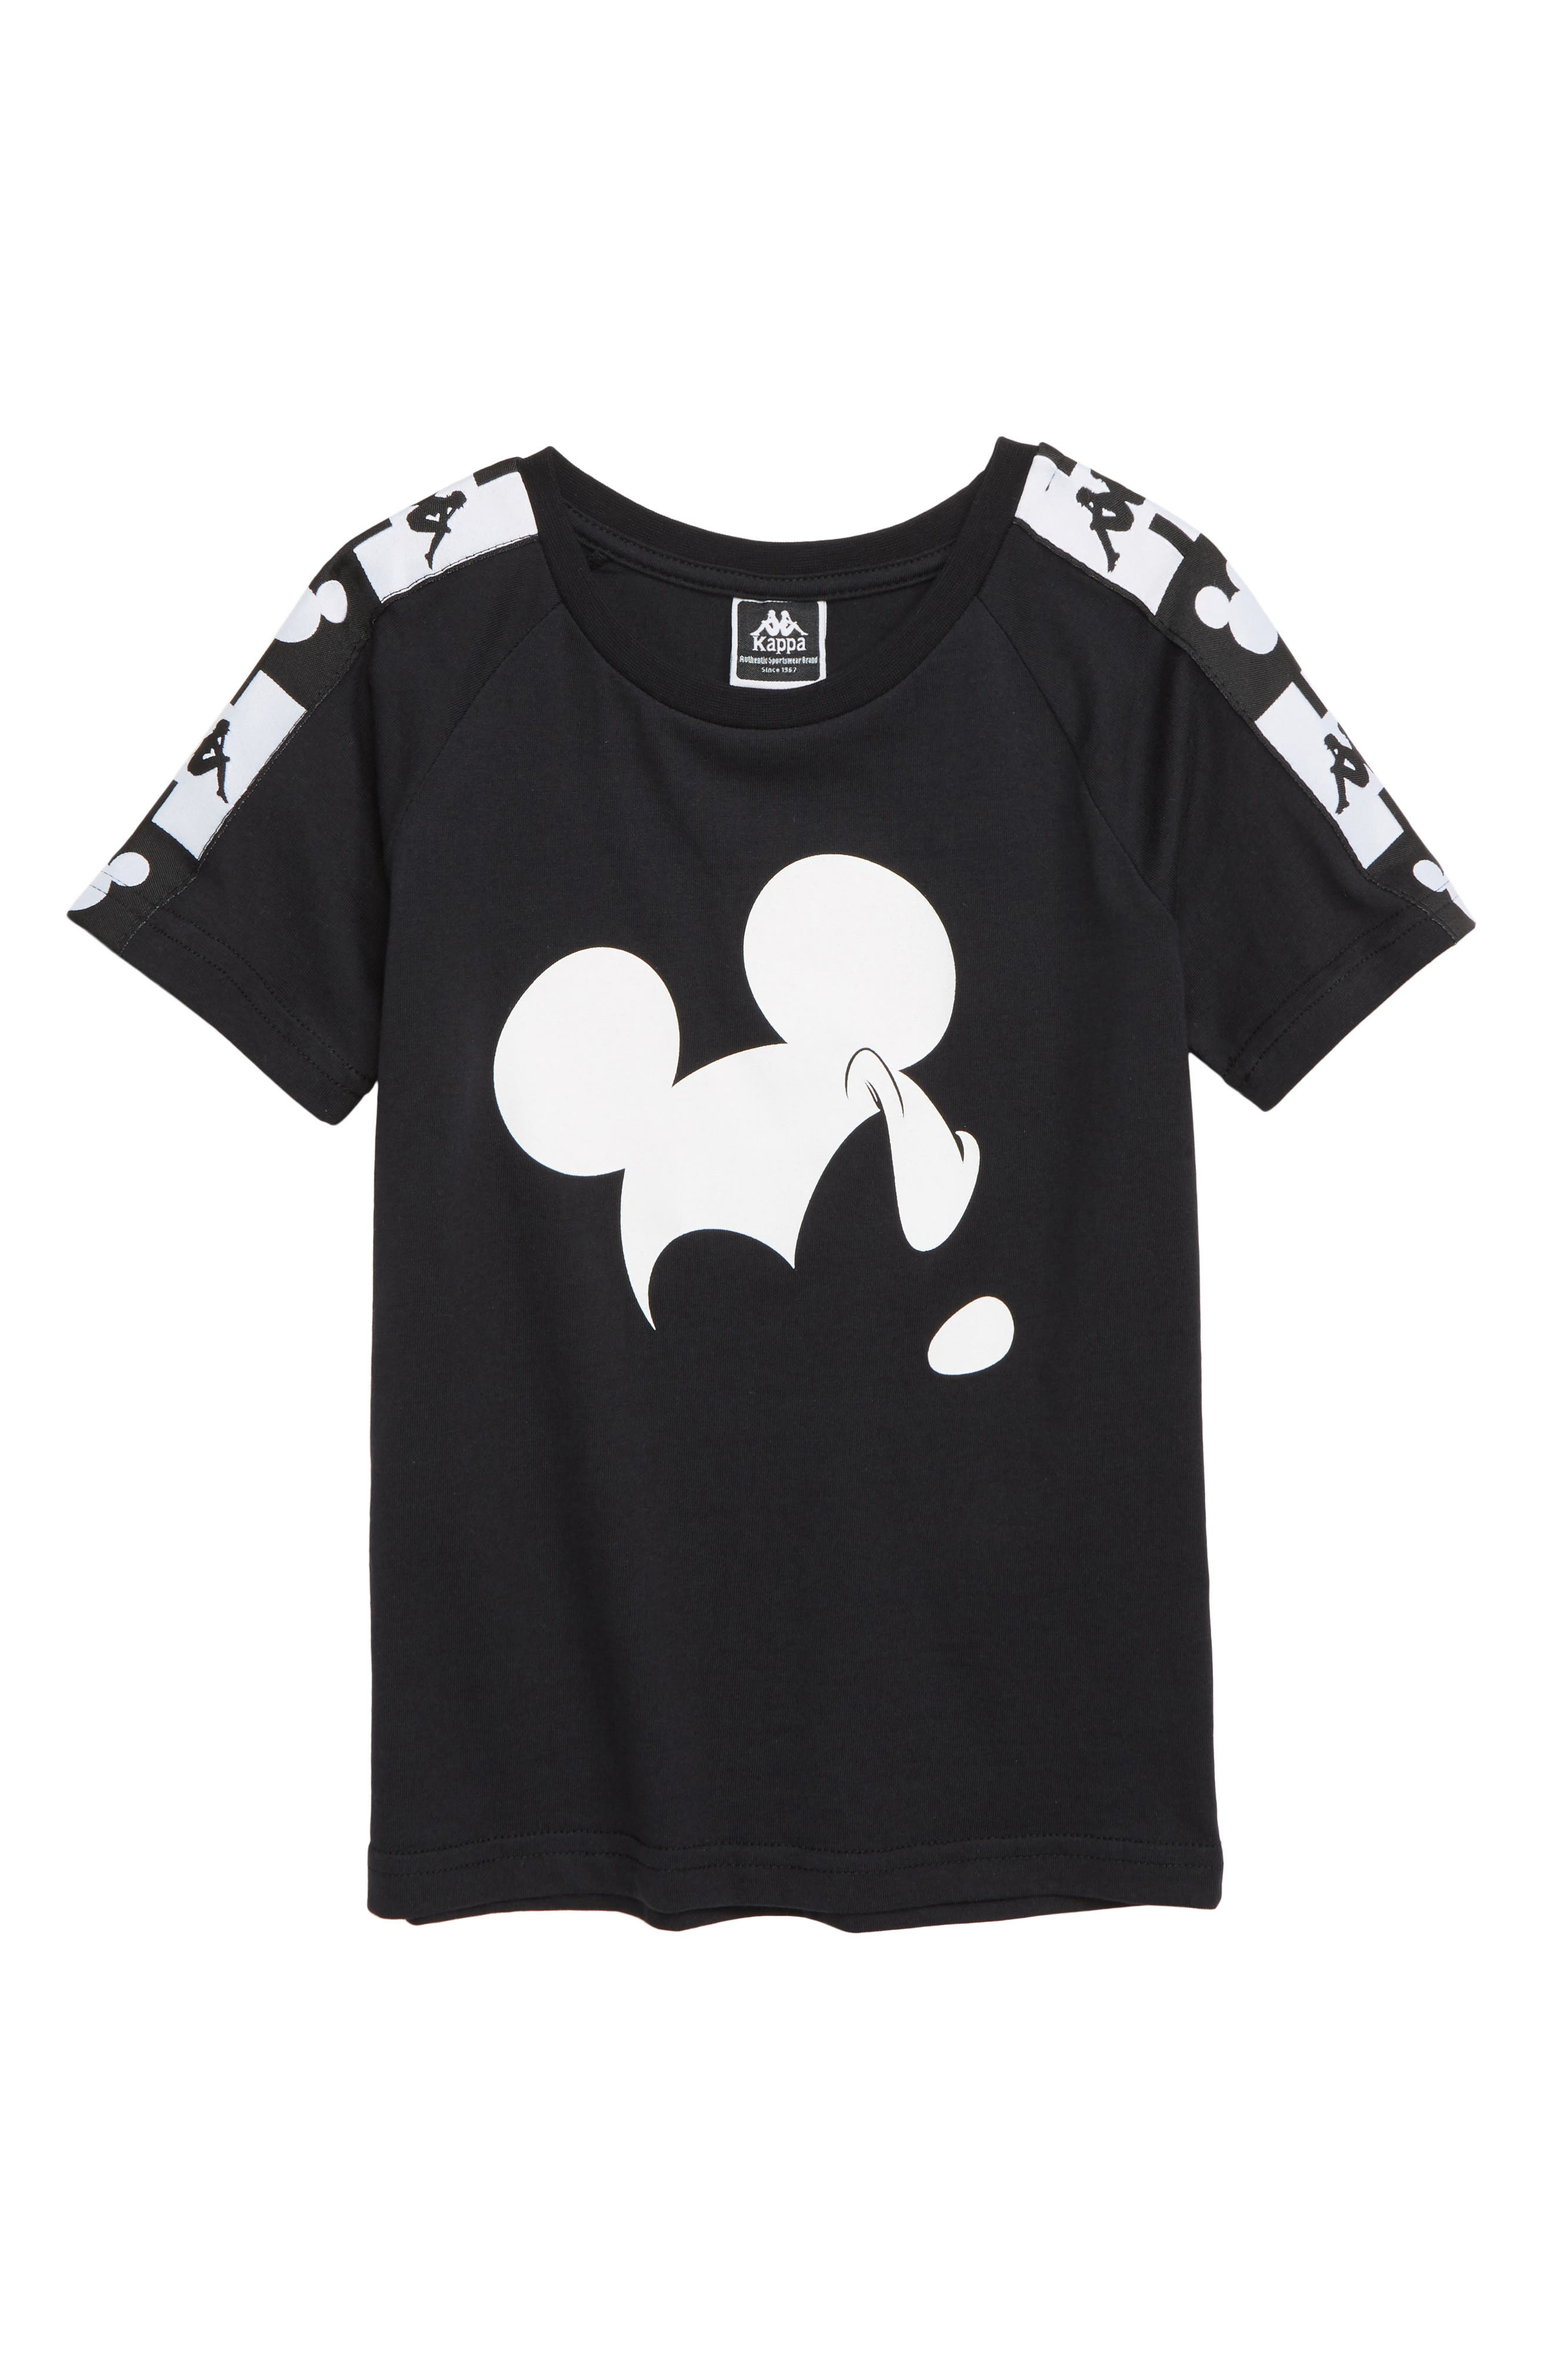 KAPPA x Disney<sup>®</sup> Authentic Alvar Mickey Mouse T-Shirt, Main, color, 001